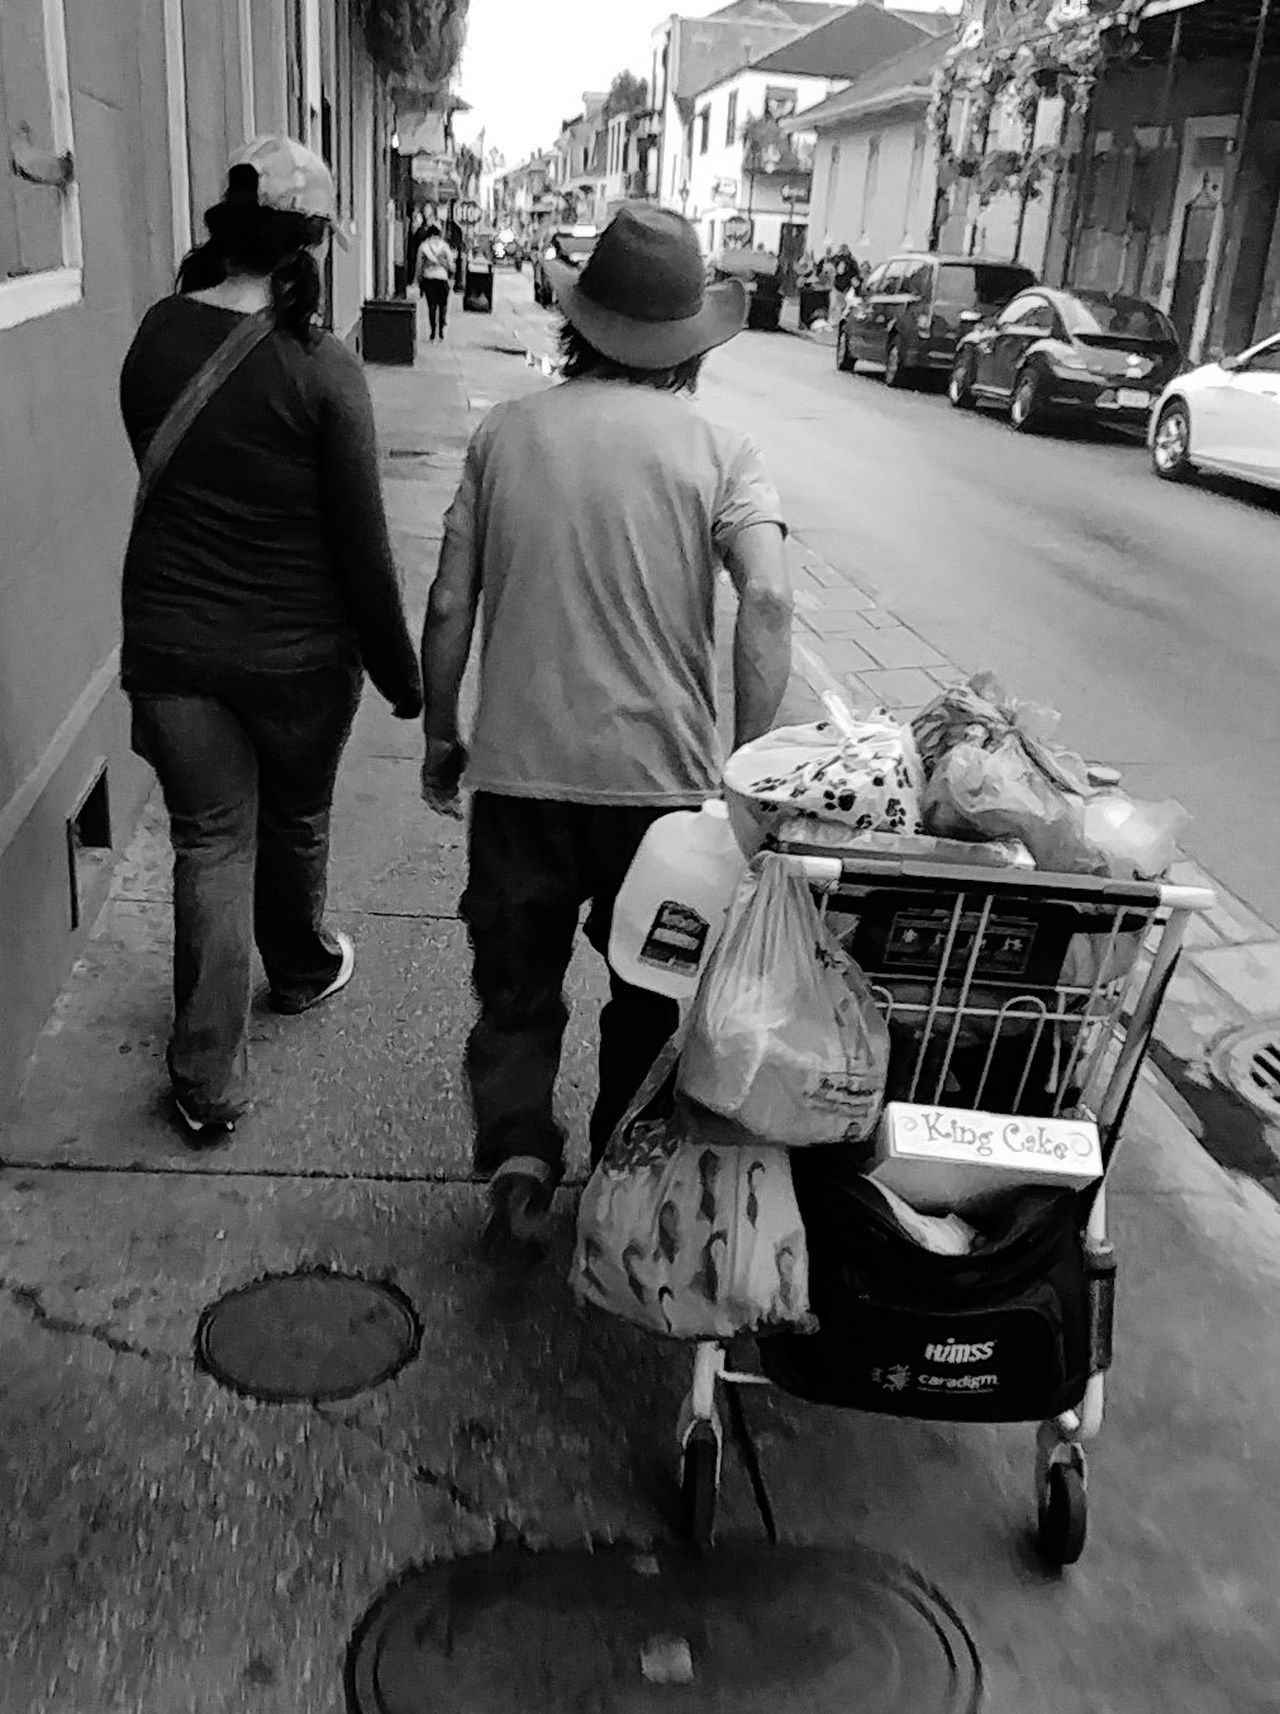 City Life Rear View Full Length Social Issues Senior Adult Help A Veteran Vietnam Veterans Shopping Cart EyeEmNewHere Welcome To Black Resist TCPM The Street Photographer - 2017 EyeEm Awards Neighborhood Map New Orleans, LA